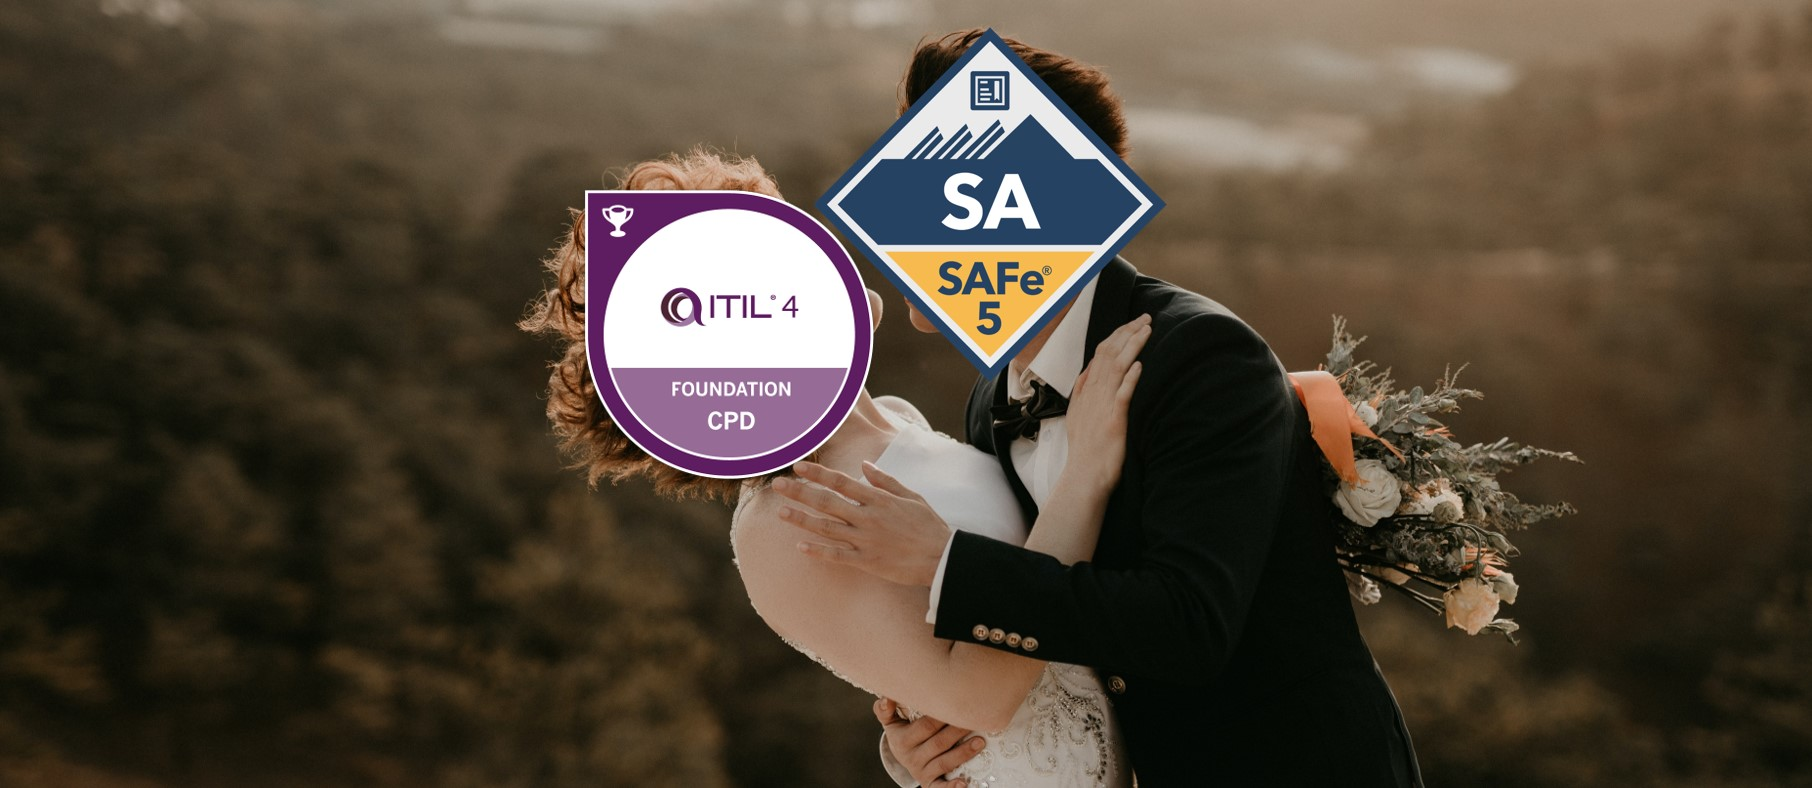 ITIL 4 marries SAFe, but can it last?